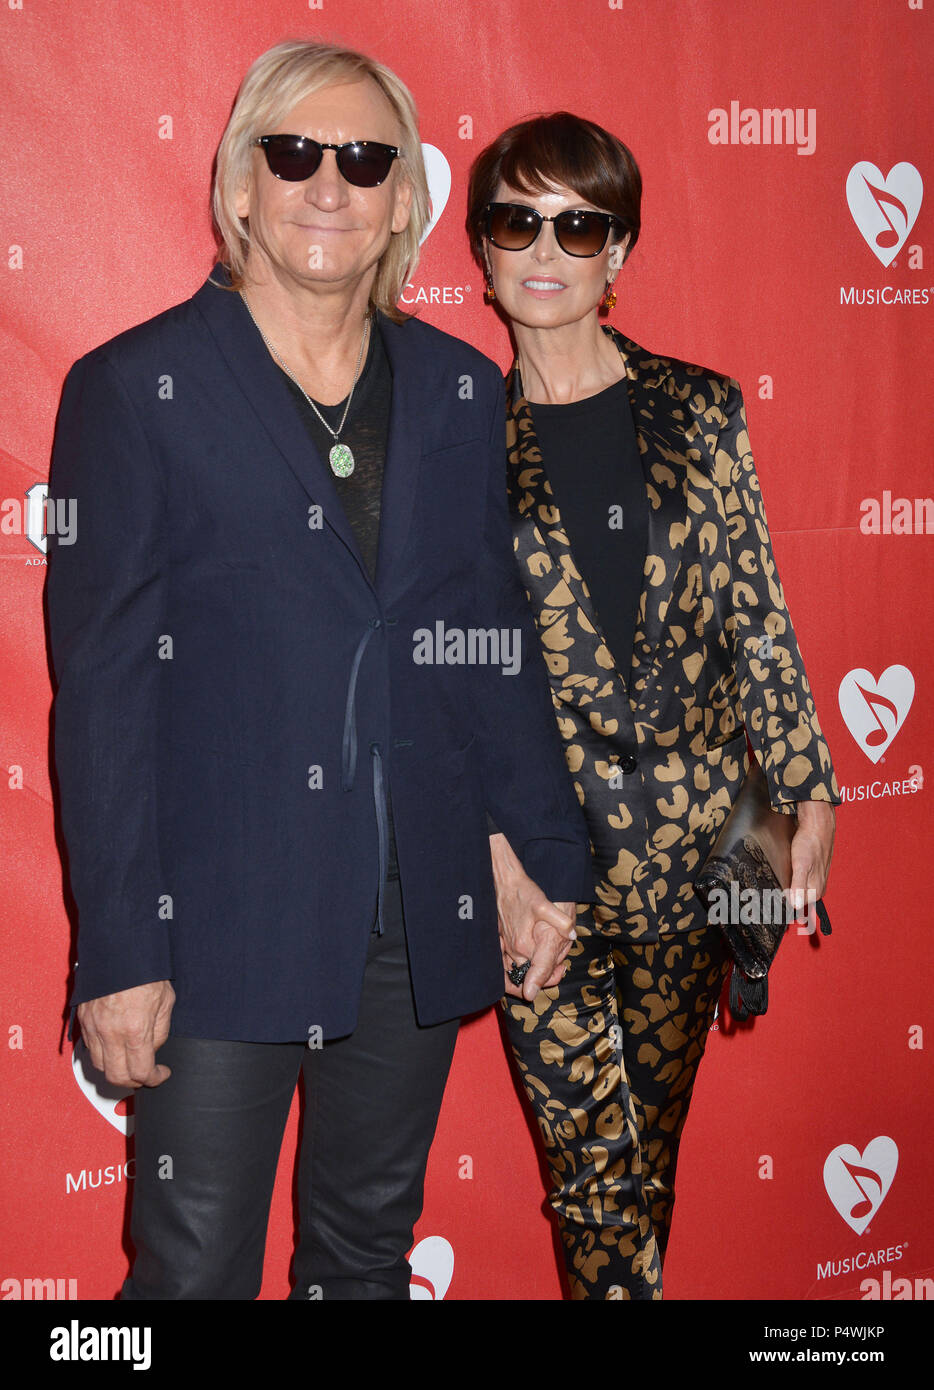 Joe Walsh, Marjorie Bach 156 at the 10th Musicares Benefit